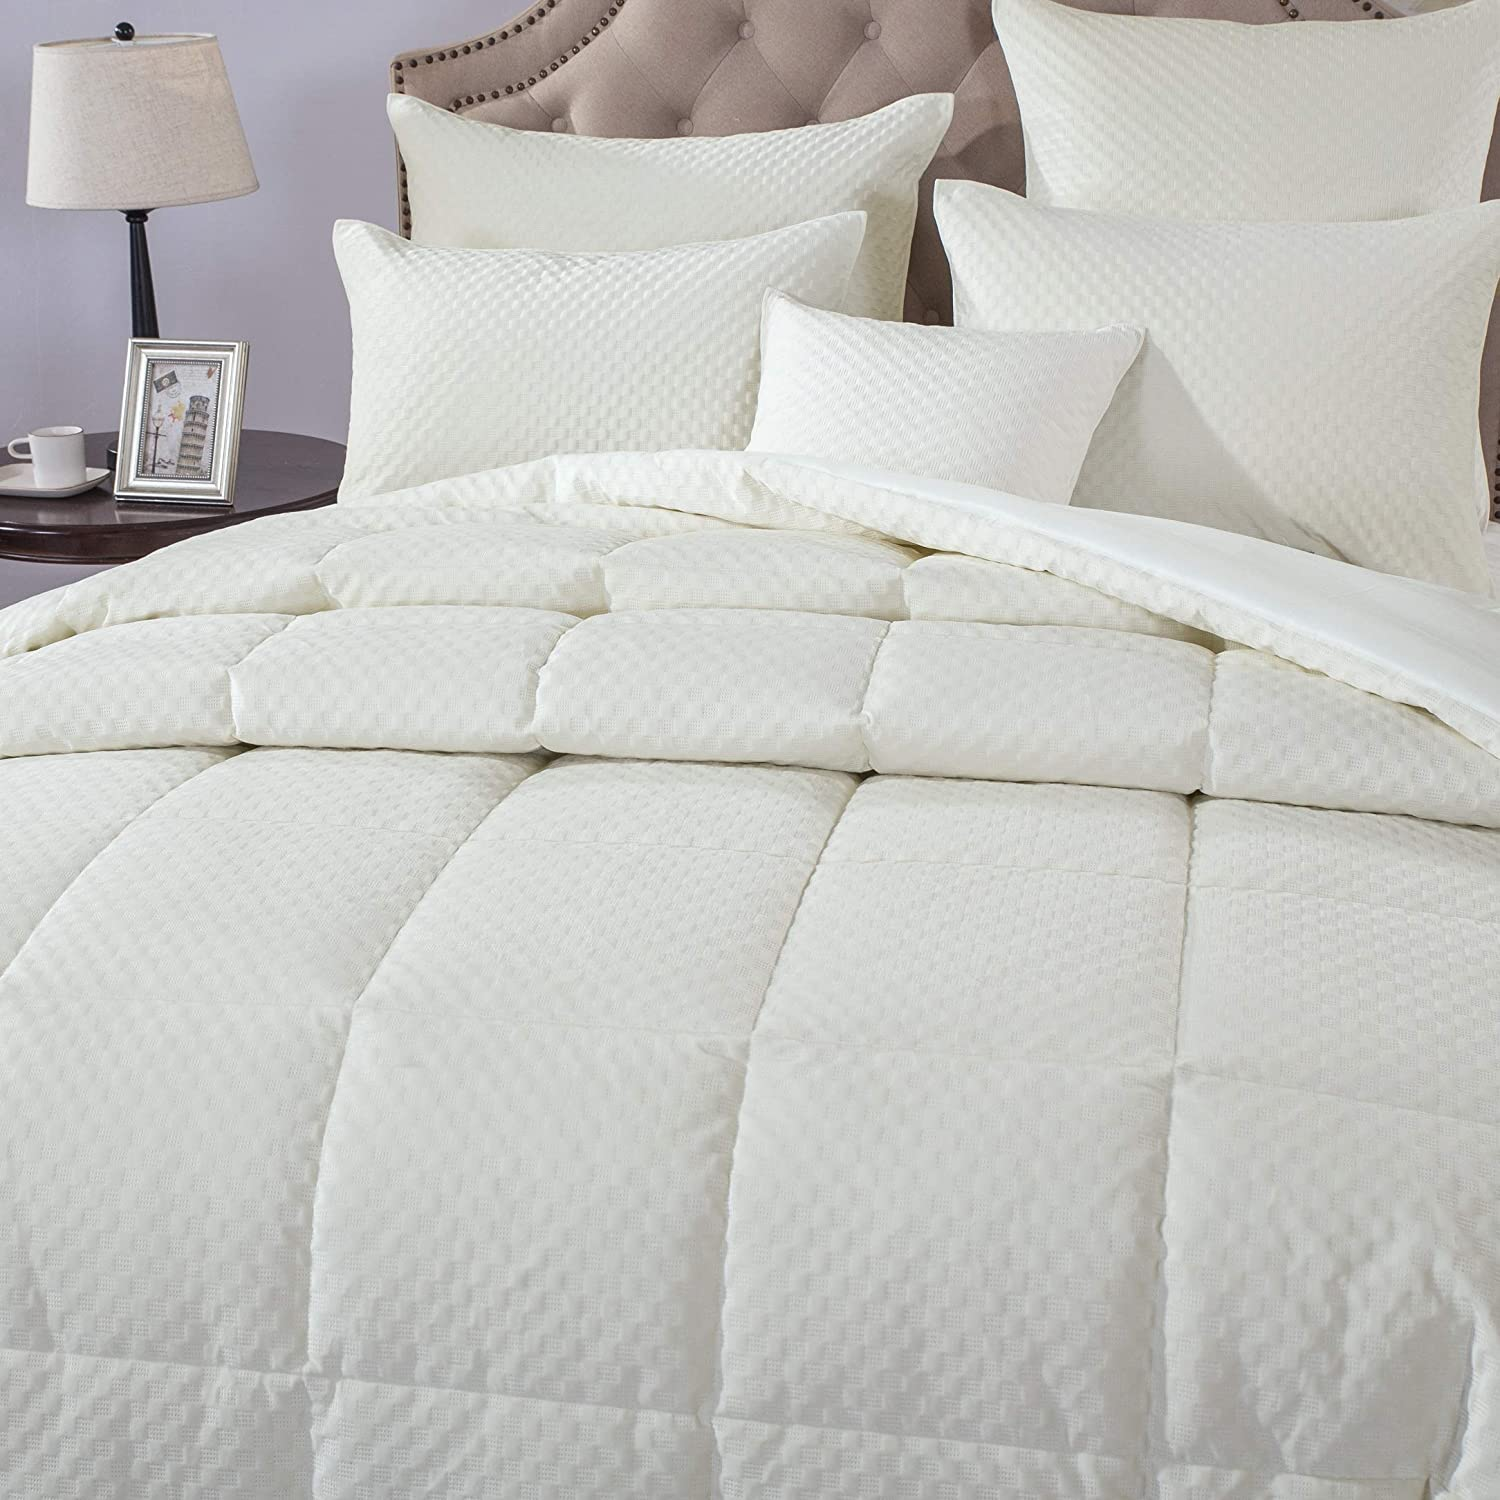 DaDa Bedding Luxury Velvet Comforter Set Warm- Eggshell White Plush 3D Pattern Coverlet - Soft Warm Quilted Alternative Down Box-Stitched - Cal King - 3-Pieces